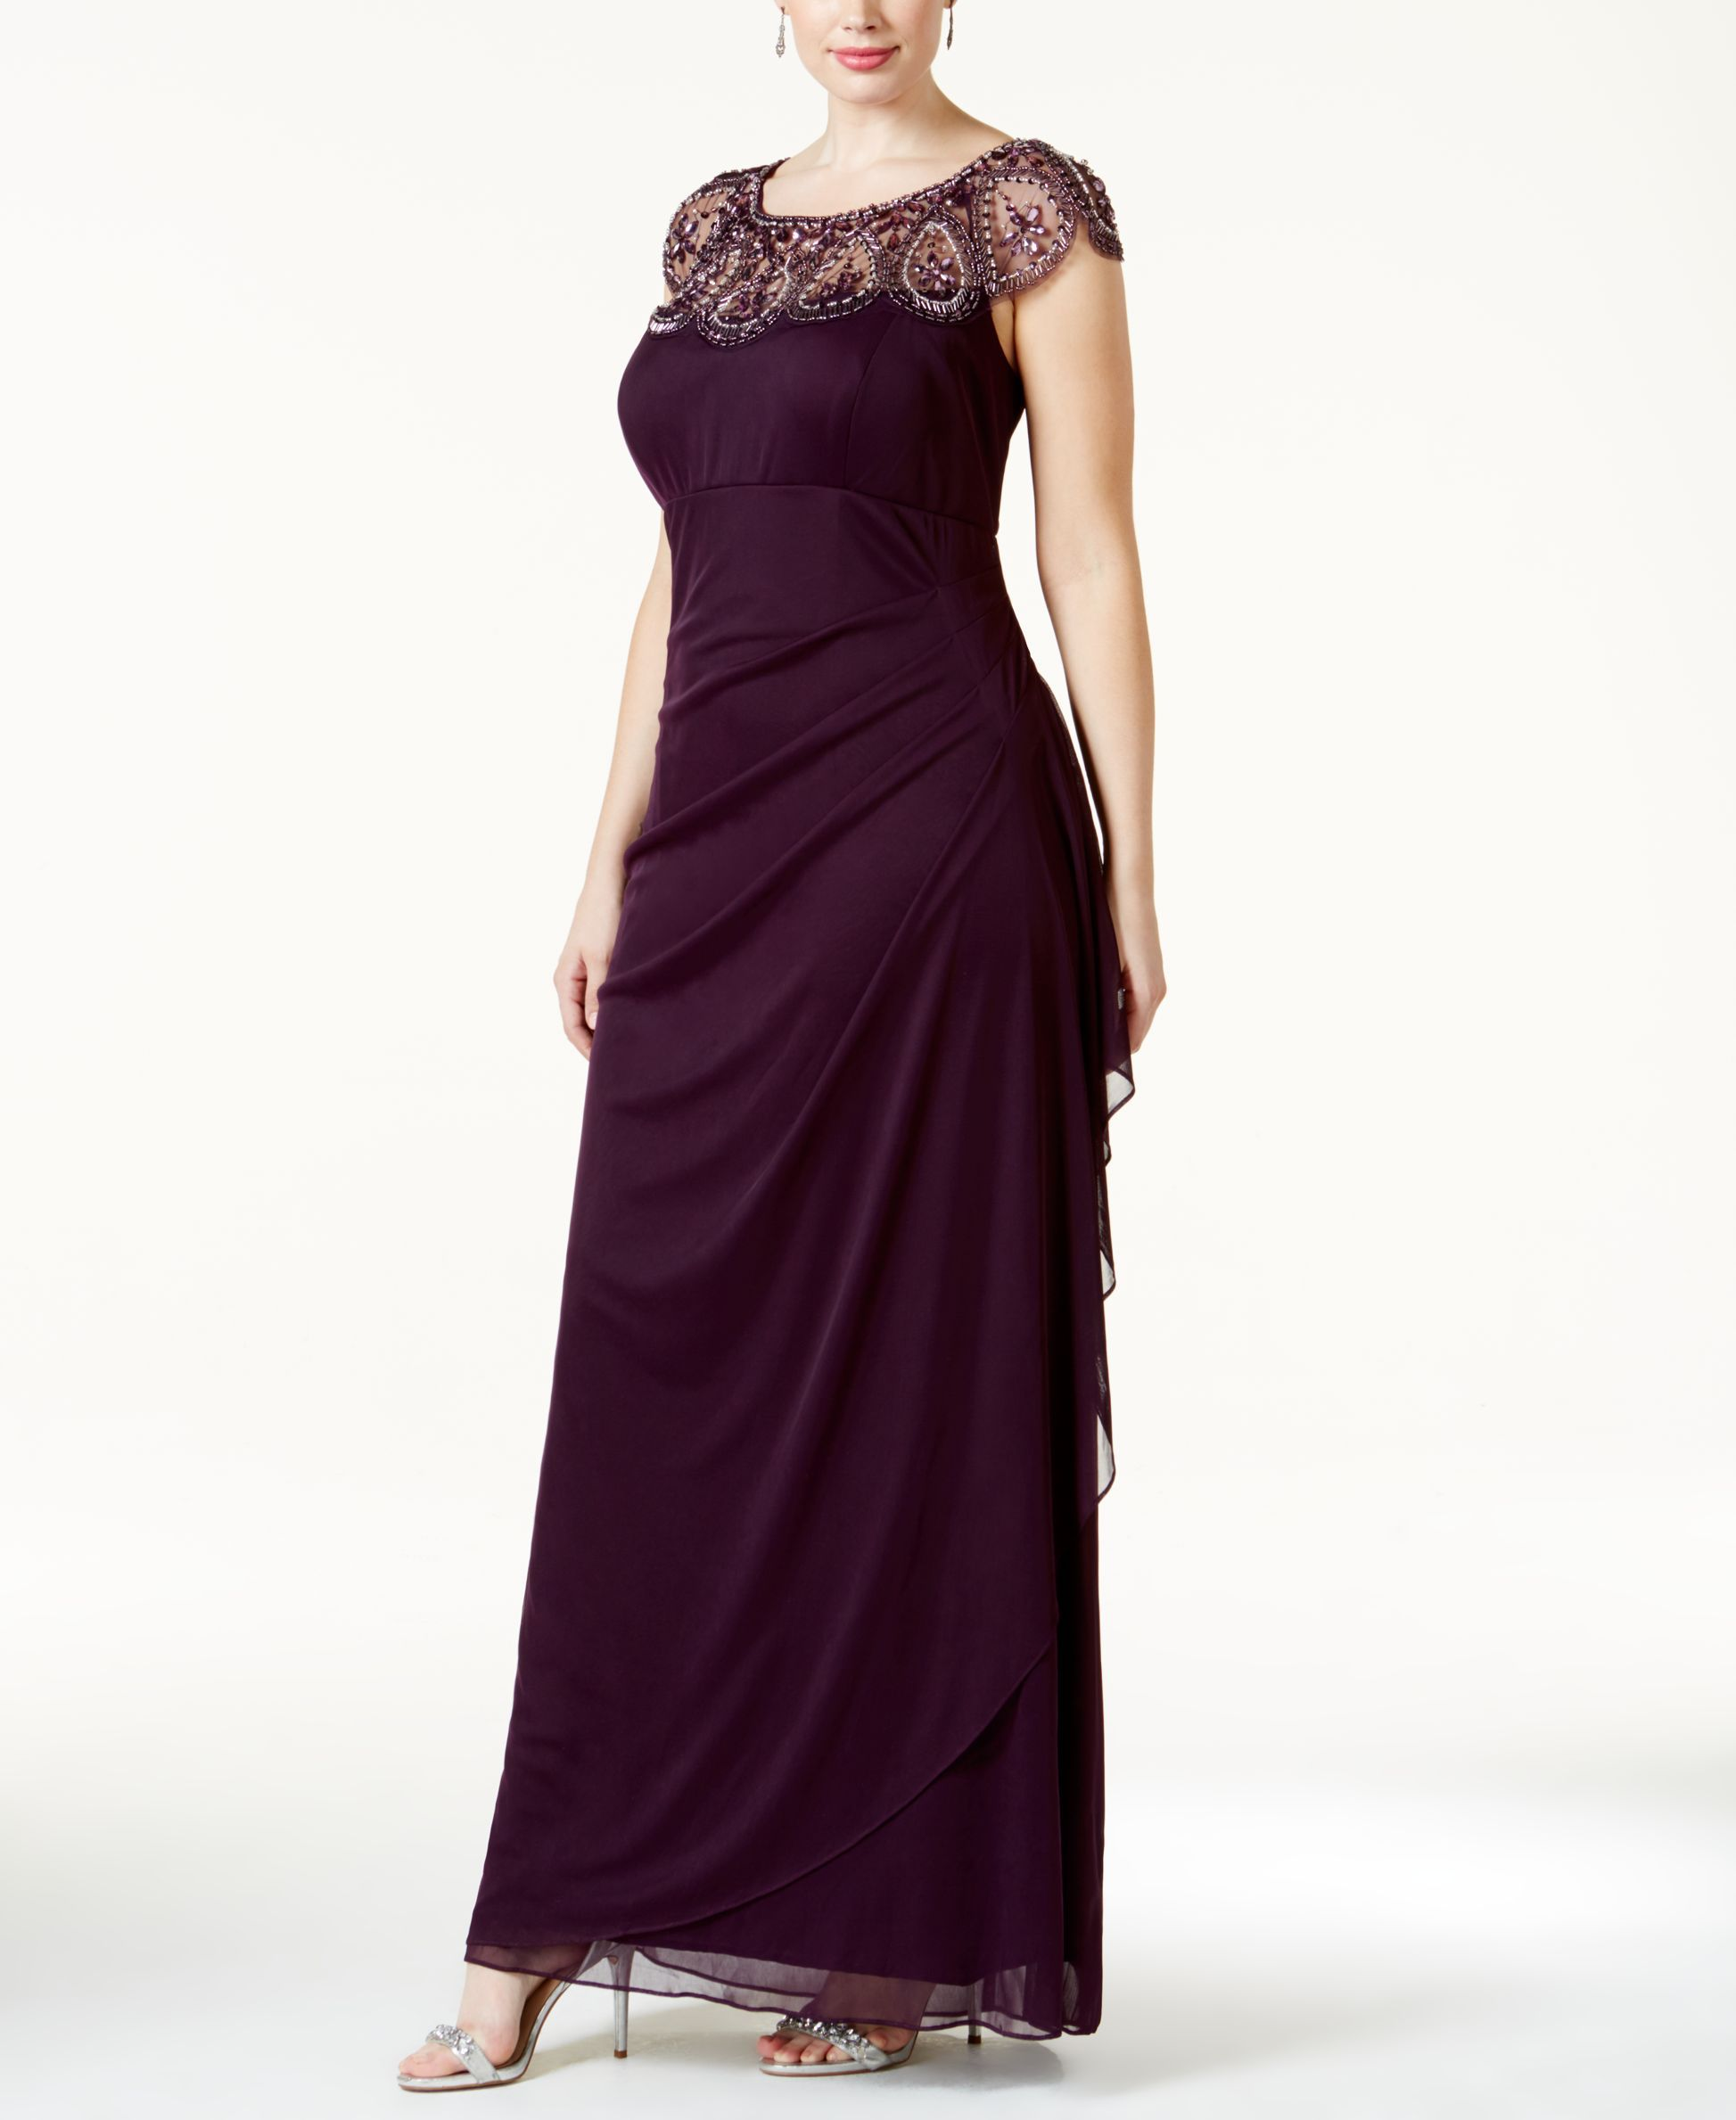 Xscape plus size illusion beaded gown gowns illusions and dress